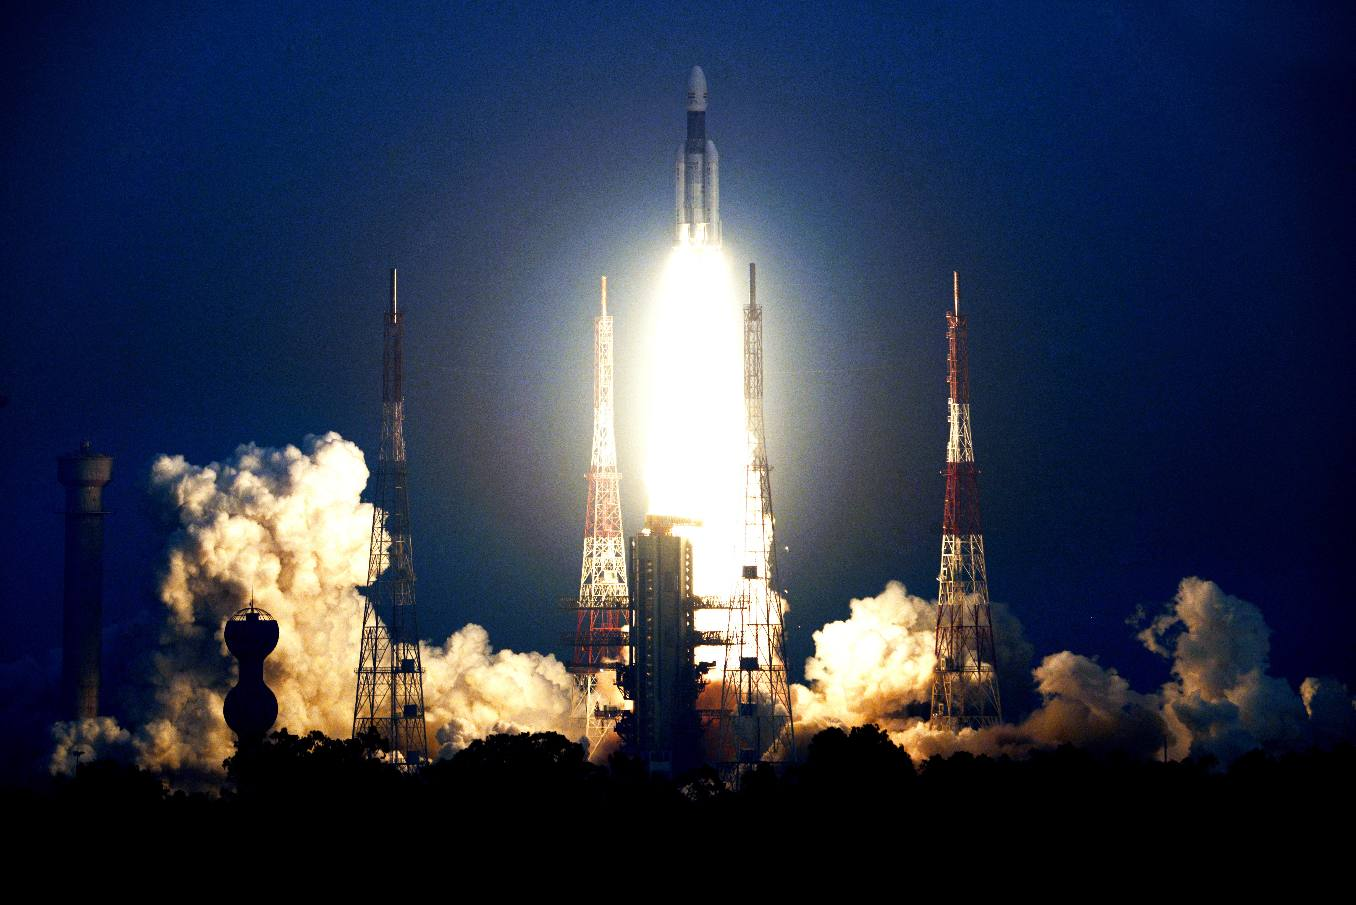 Launch success for India's GSLV Mk III